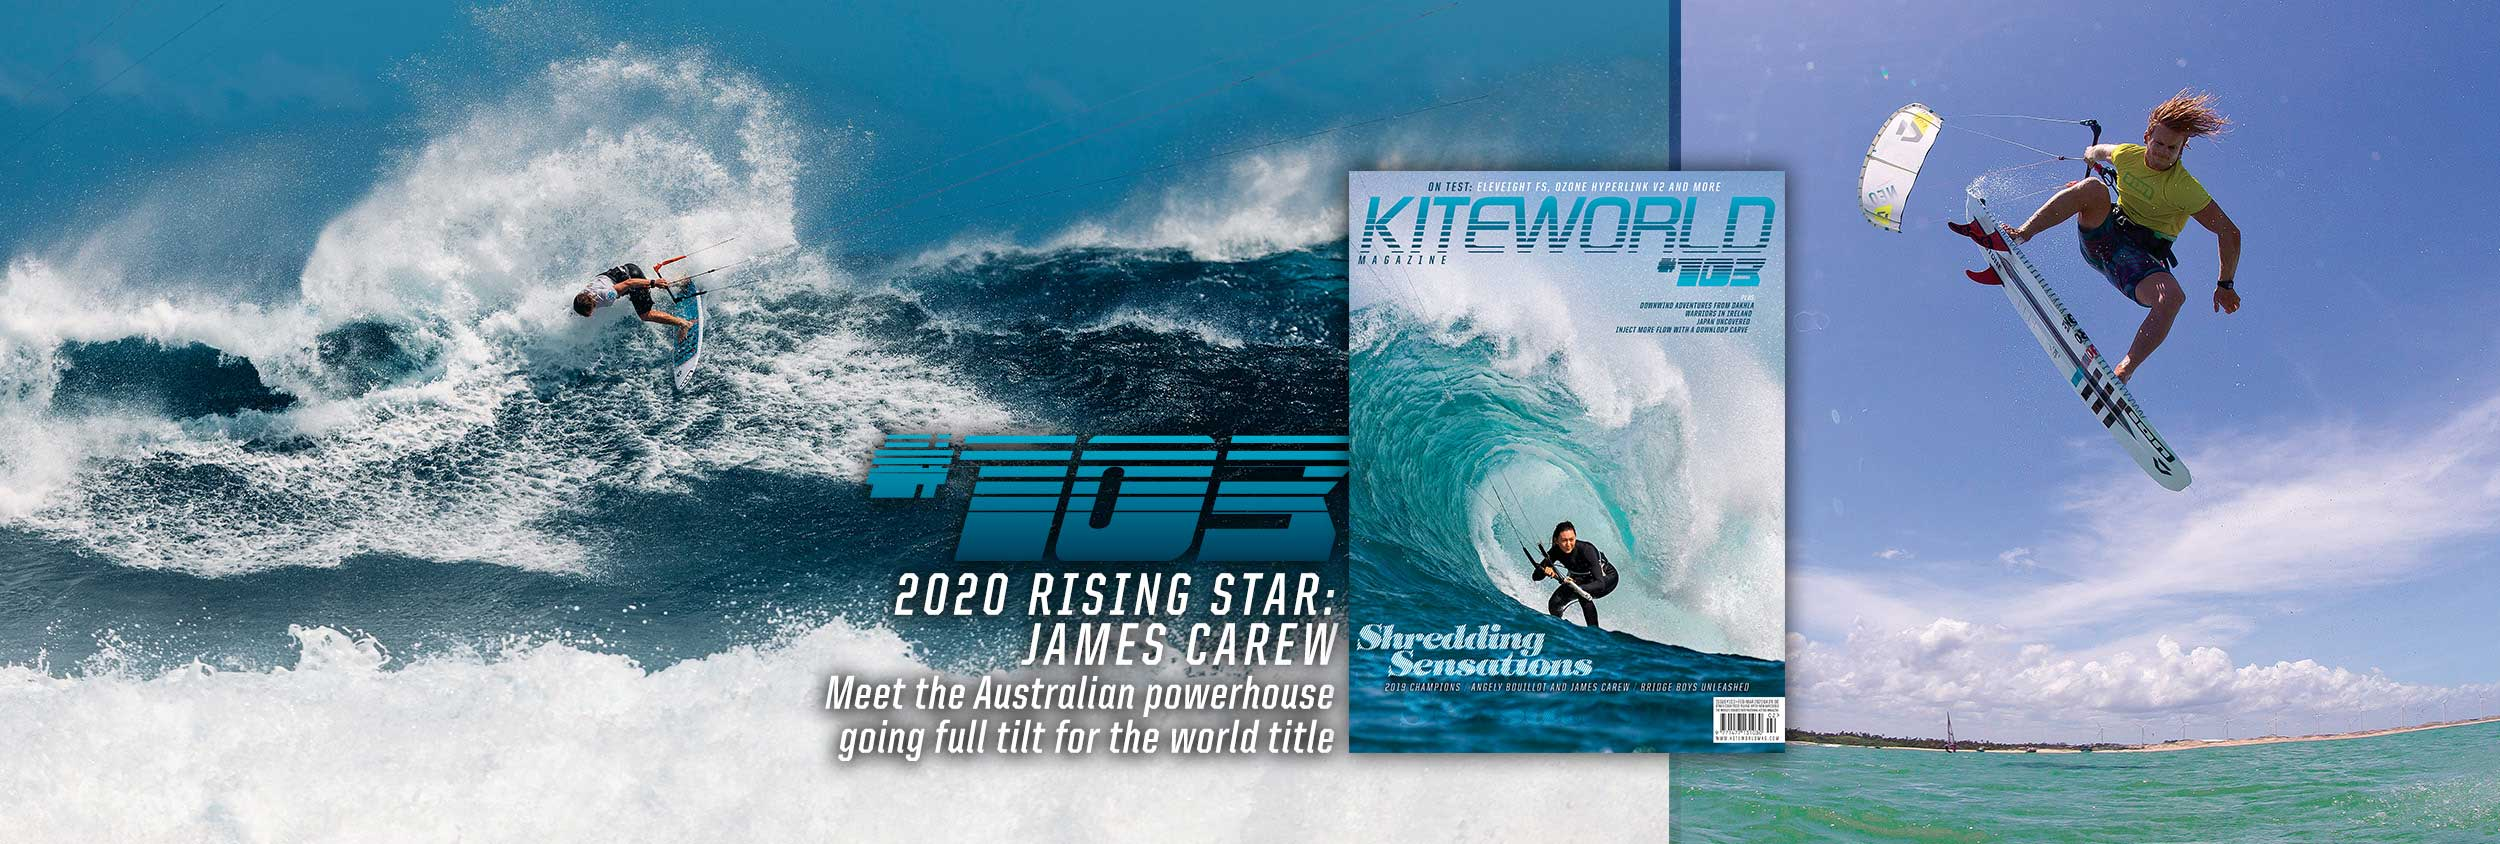 James Carew kitesurfer